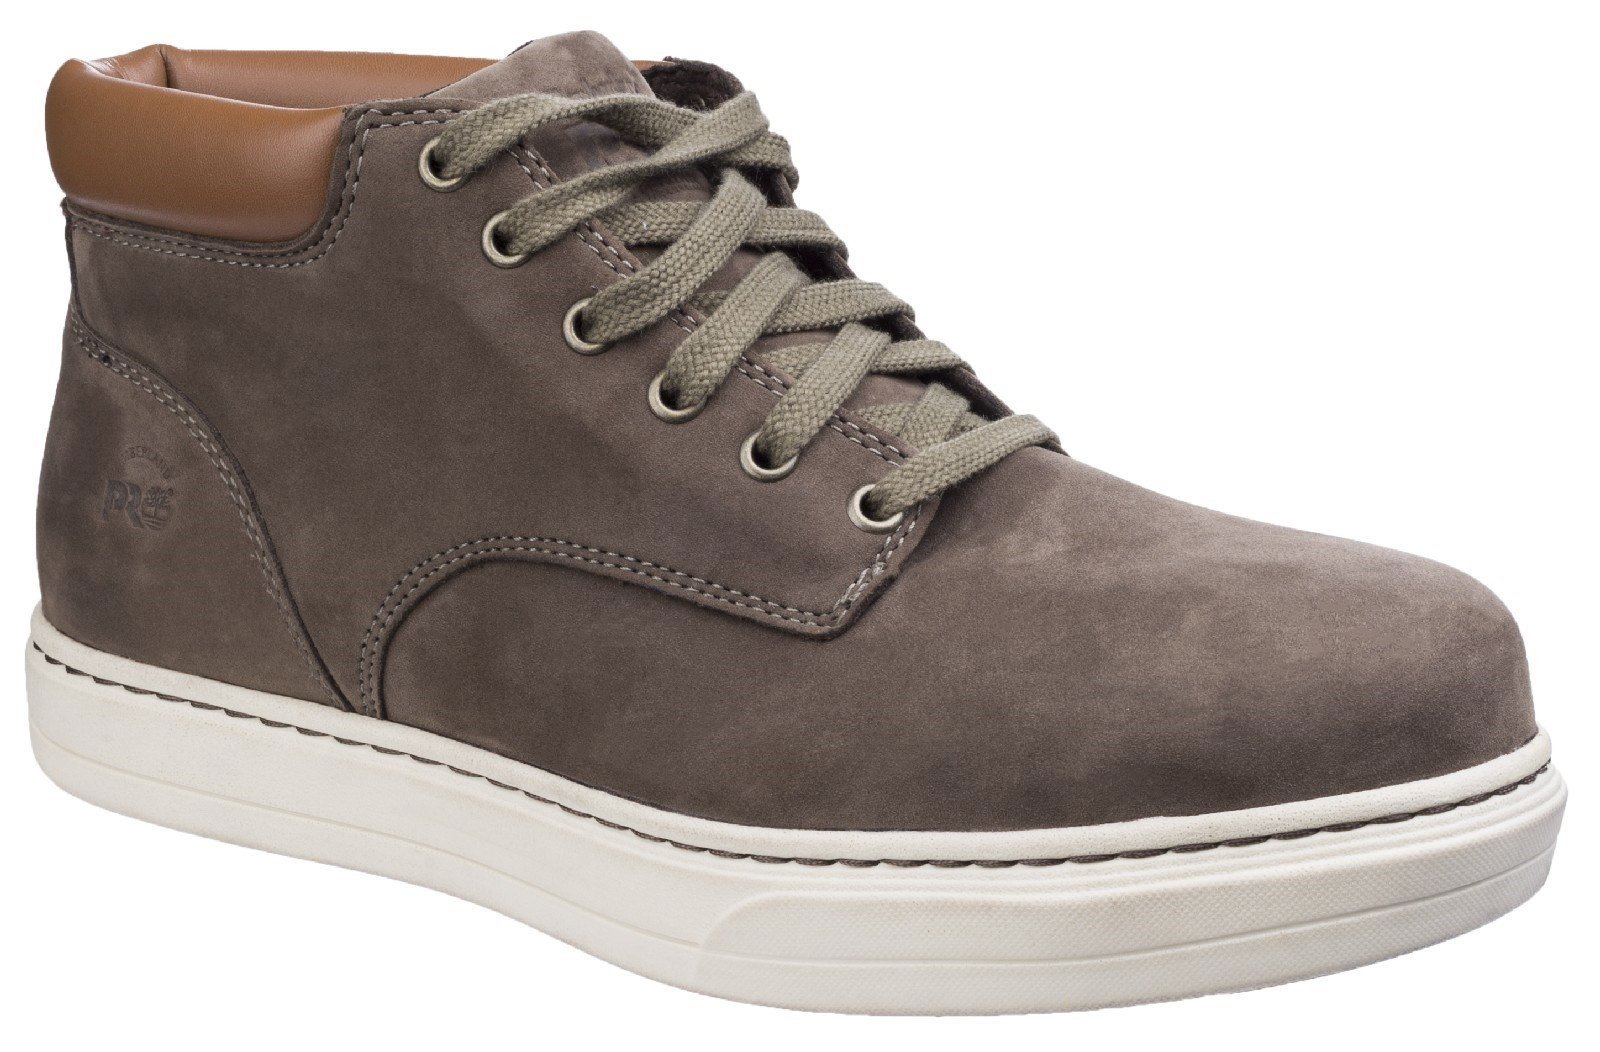 Timberland Pro Men's Disruptor Chukka Lace up Safety Boot Brown 26365 - Donkey 6